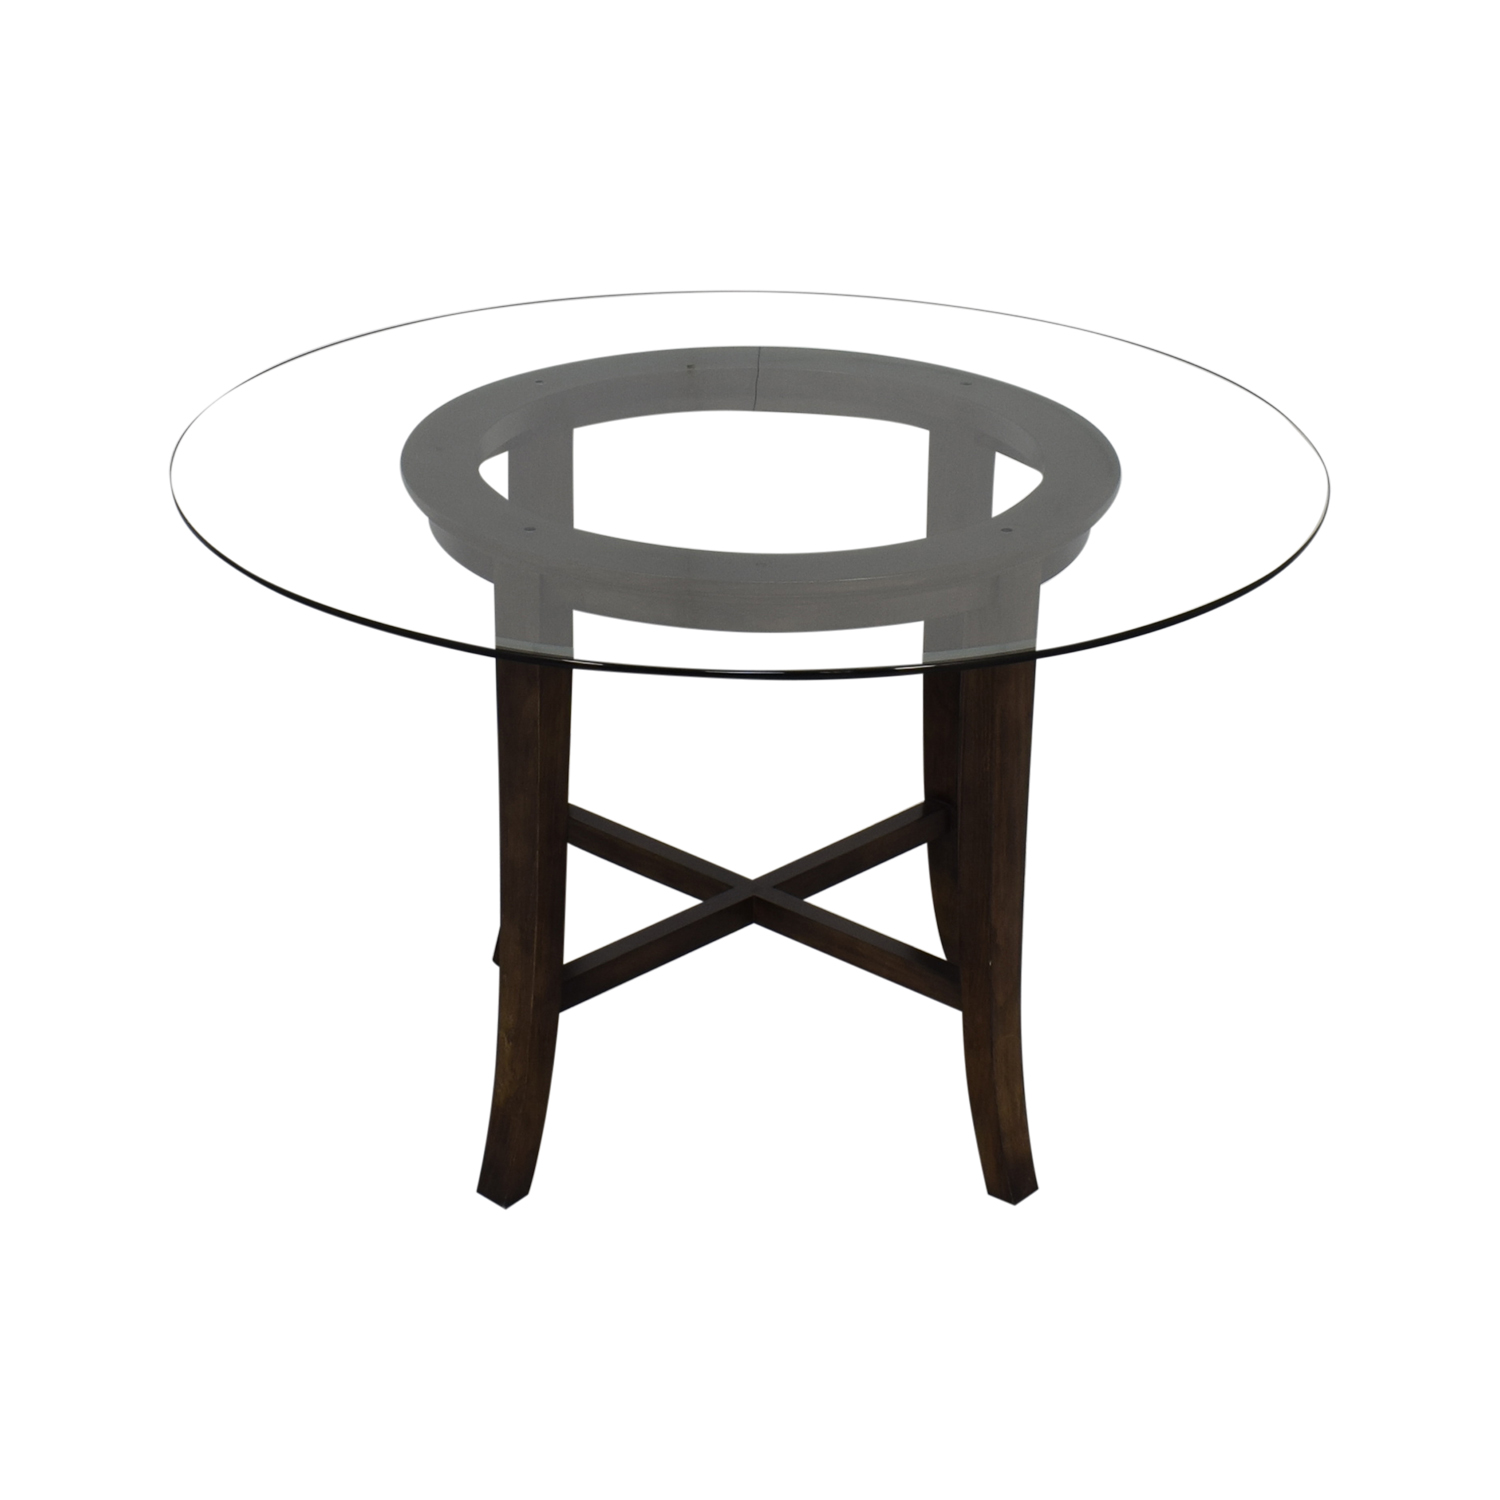 Crate & Barrel Crate & Barrel Halo Round Dining Table